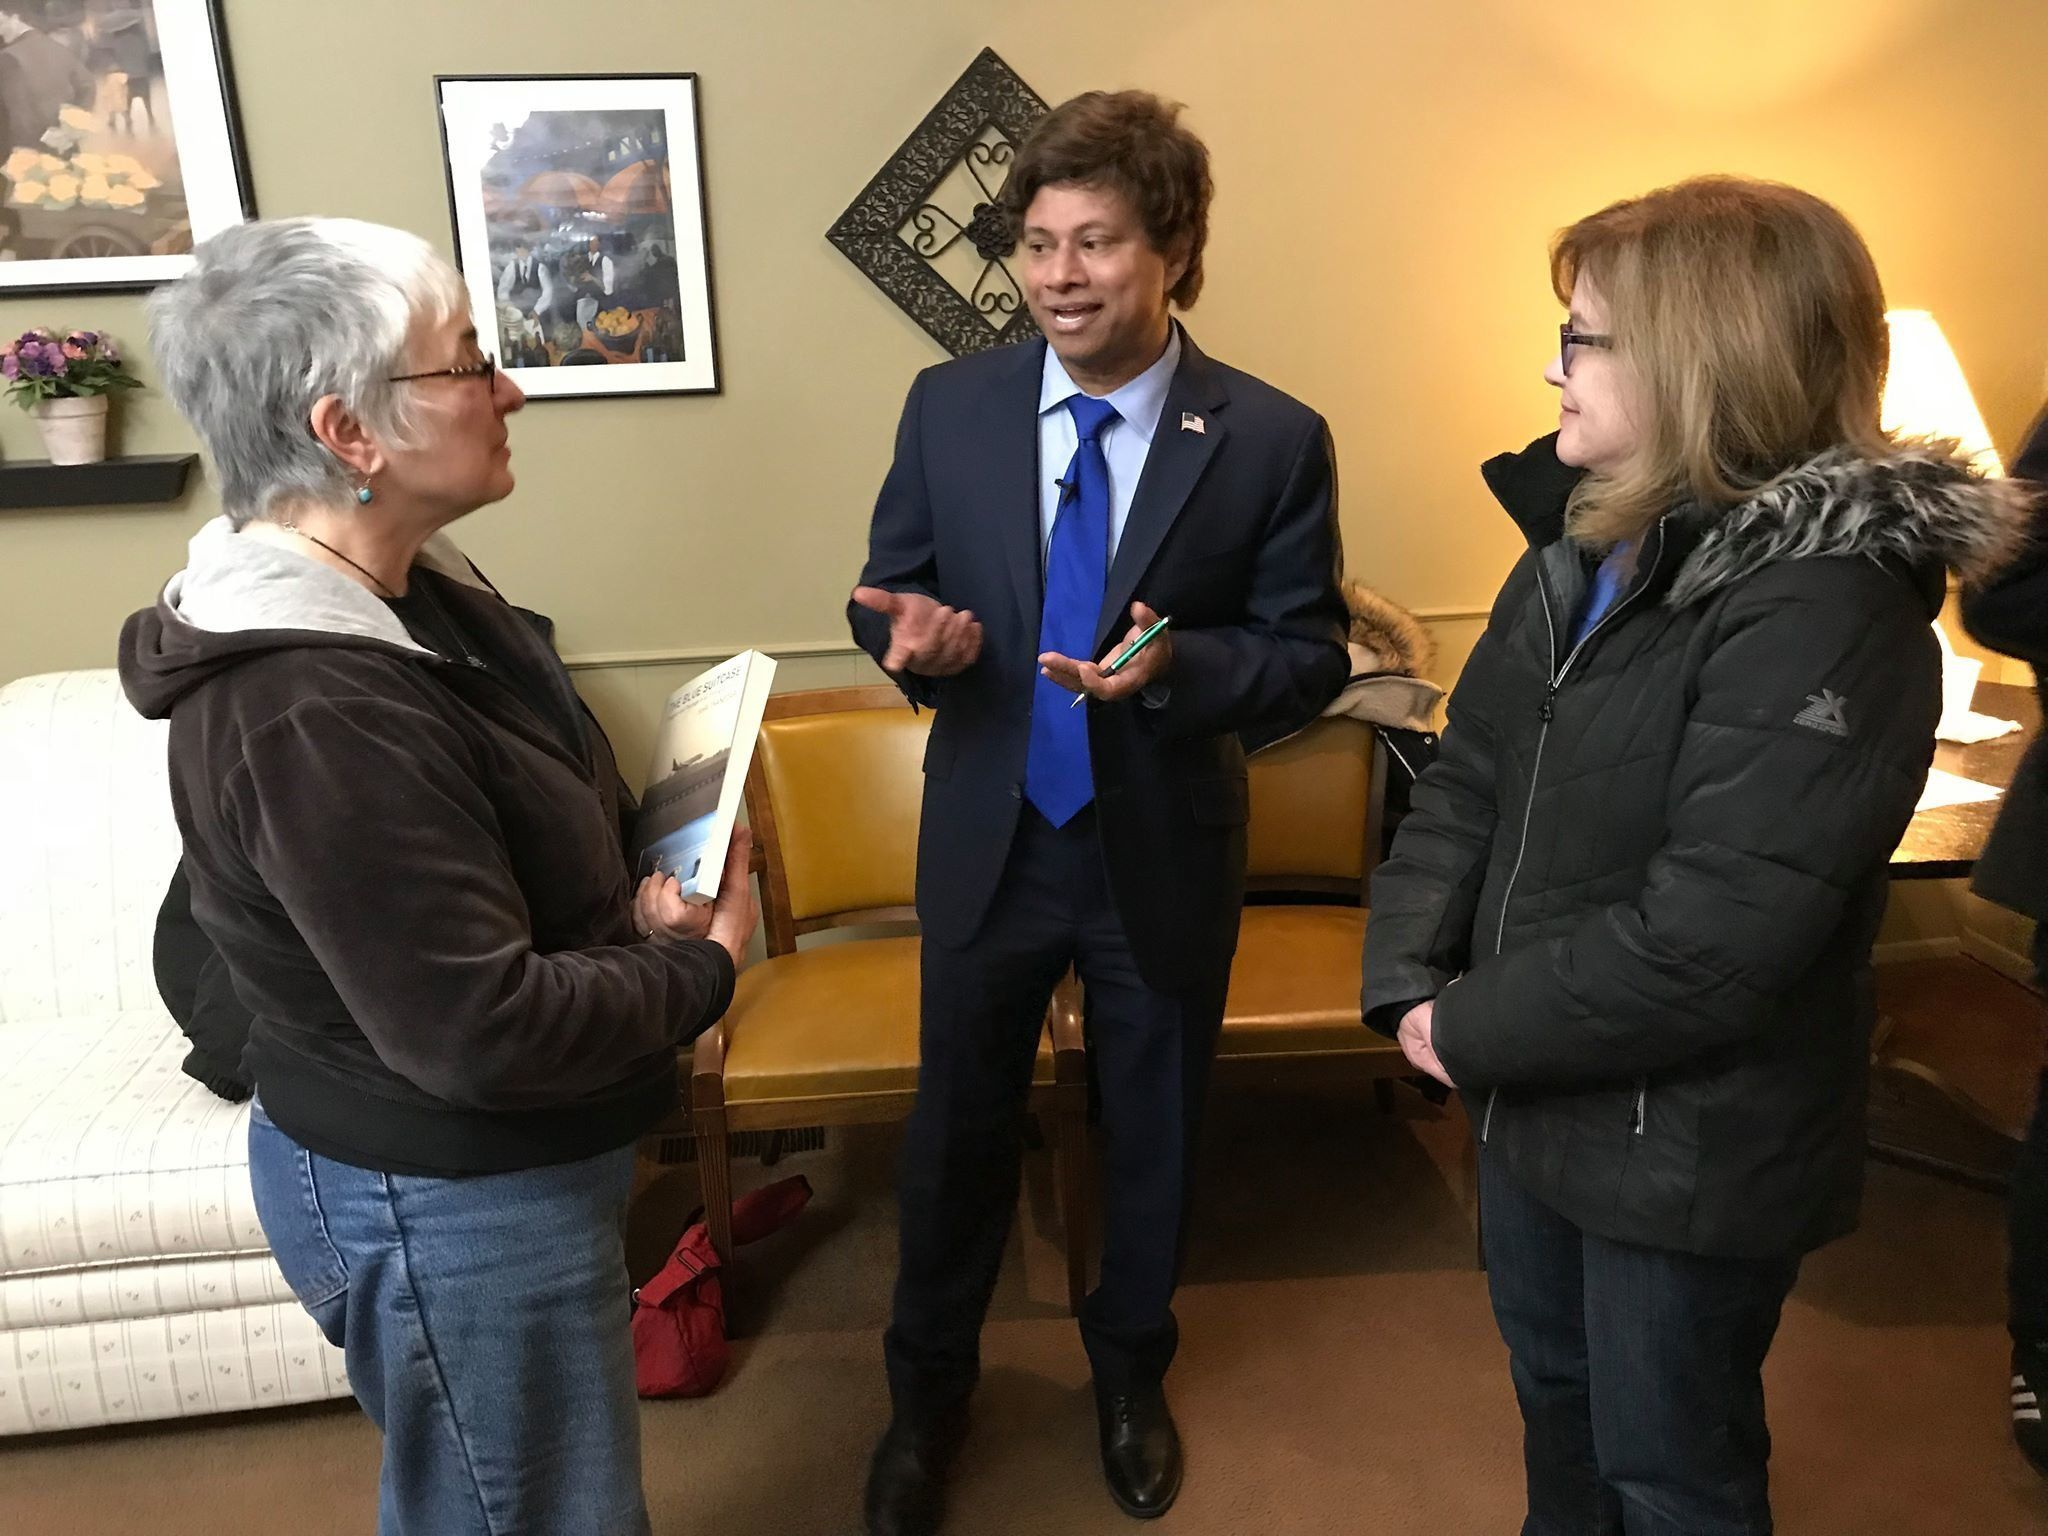 Democrat Shri Thanedar speaks to voters. Thanedar has drawn scrutiny for past business practices, including the treatment of